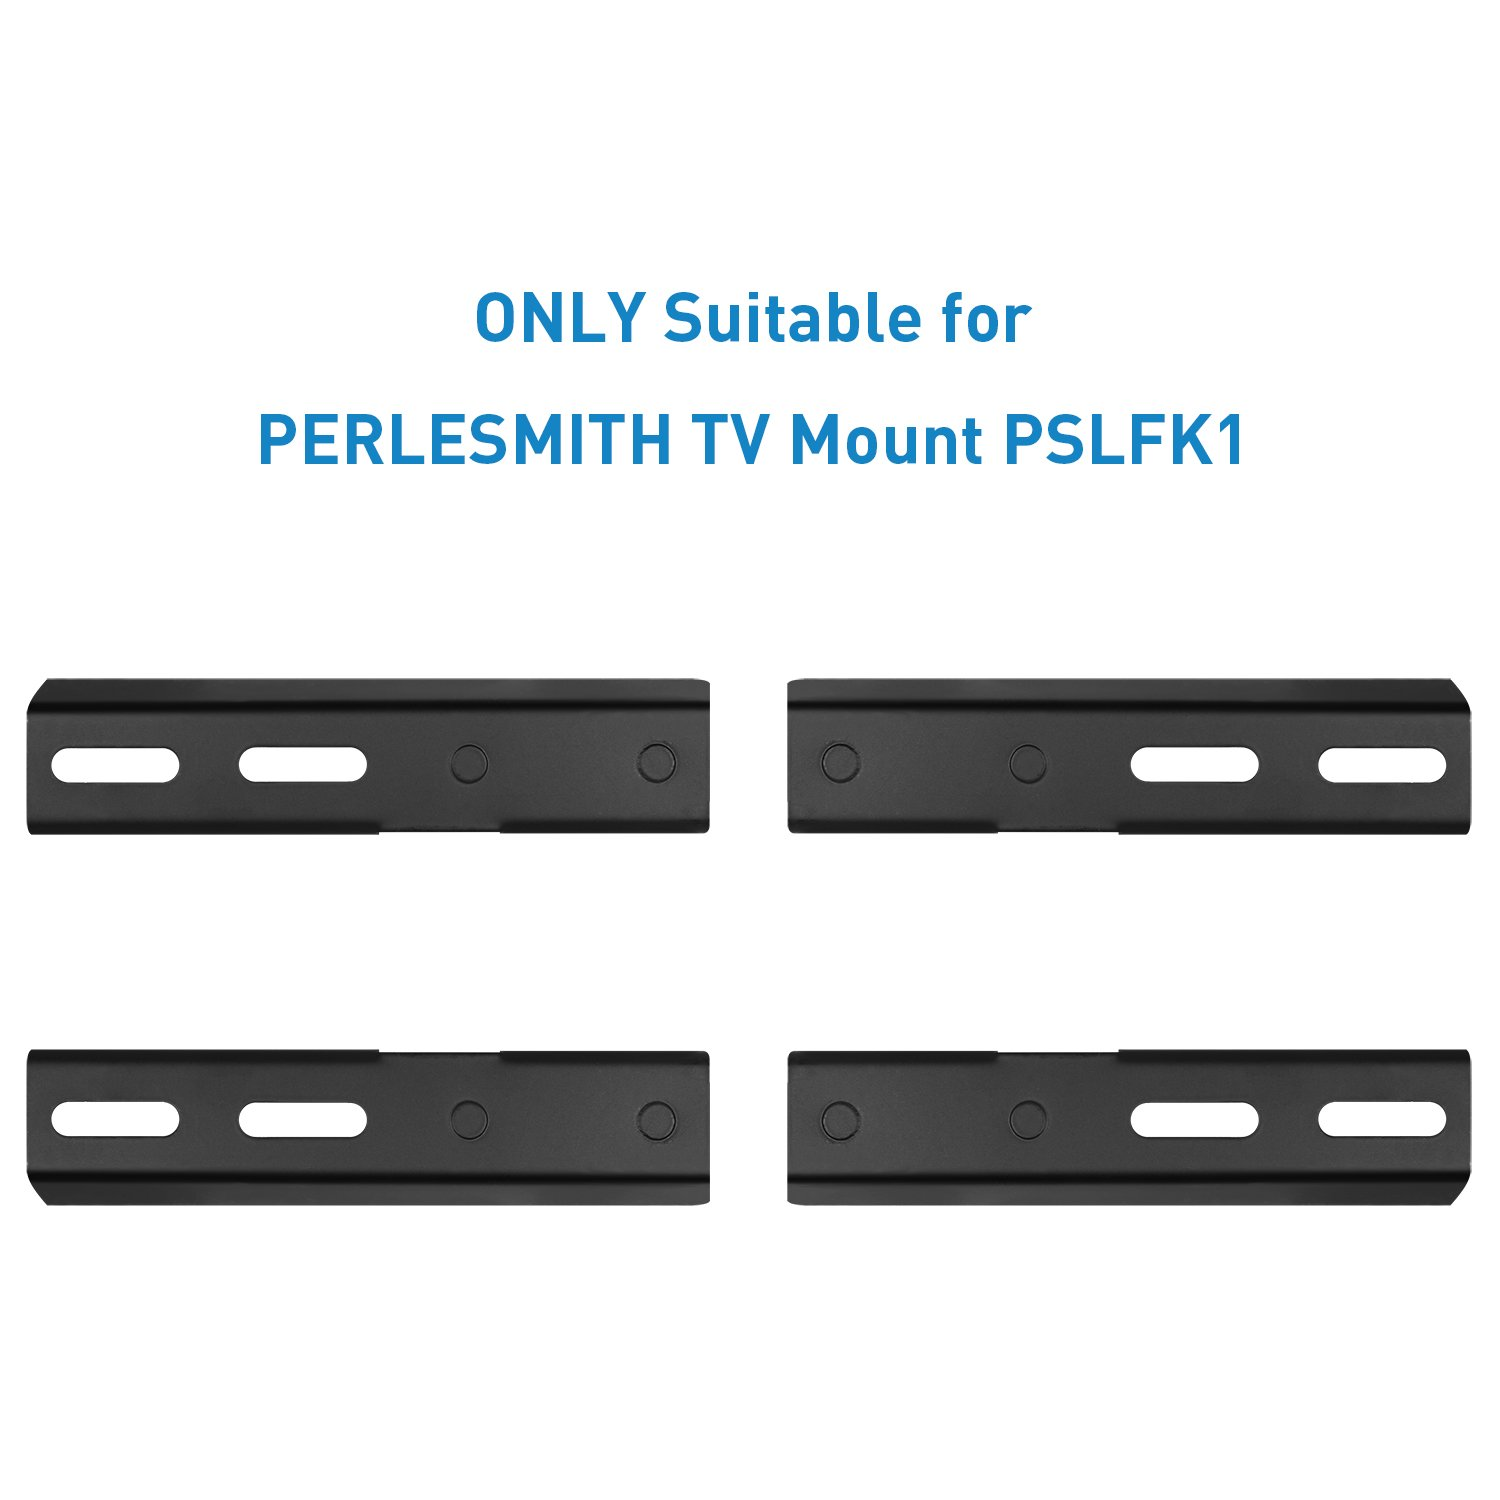 18-24 Inch Wood Stud Extension Bracket ONLY for 16 Inch Wall Plate of PERLESMITH TV Full Motion Wall Mount-PSLFK1, Max Loading Capacity 132 LBS, Solid Steel TV Mount Extender and Easy Installation